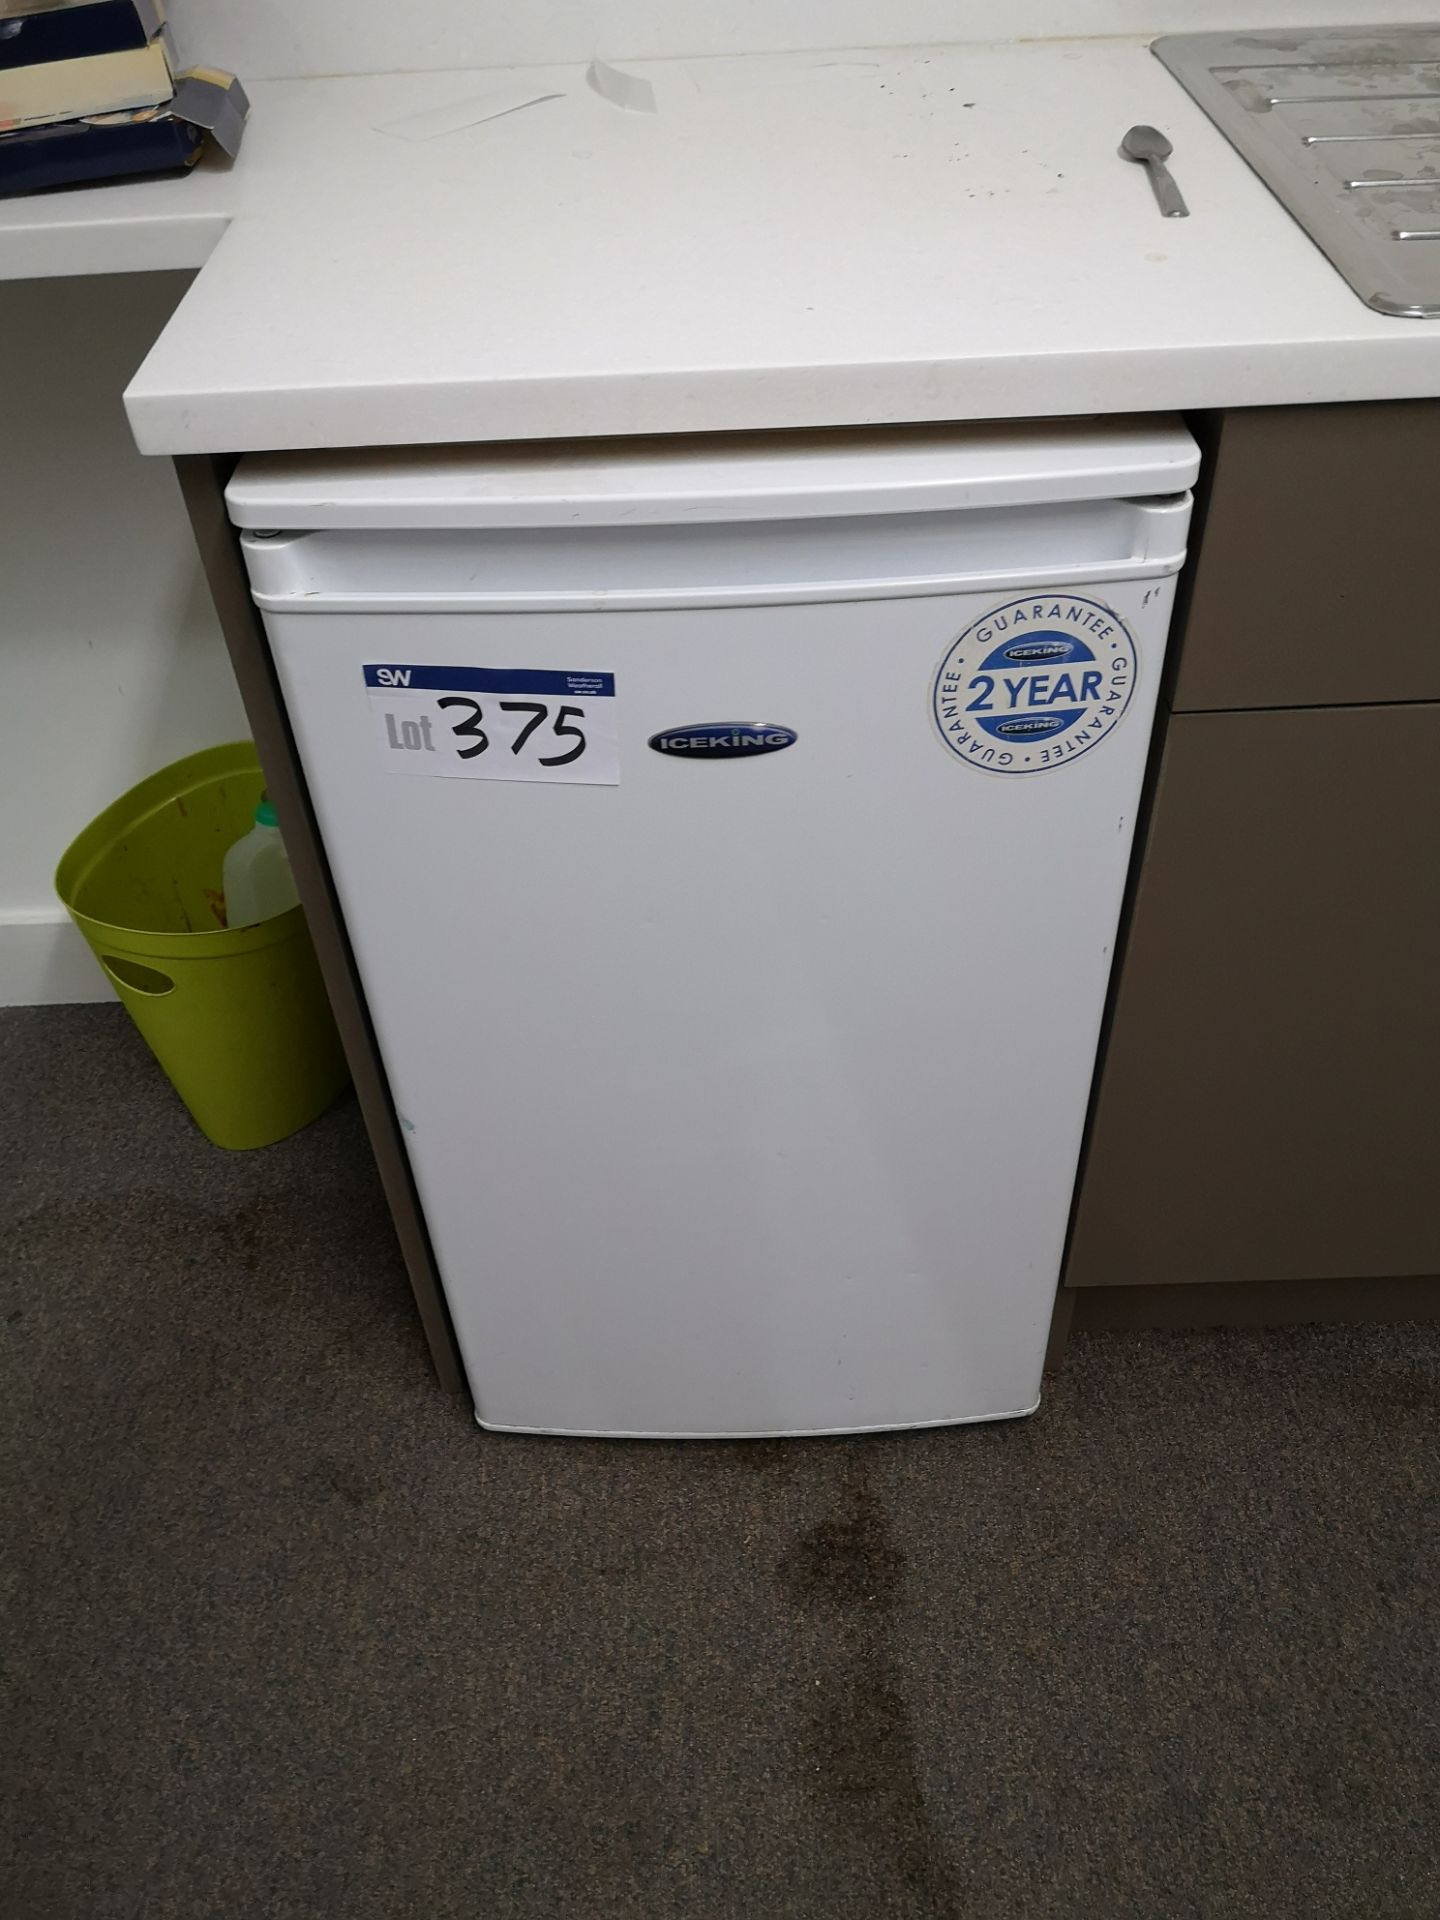 Lot 375 - Ice King Under the Counter Refrigerator (LOT LOCAT